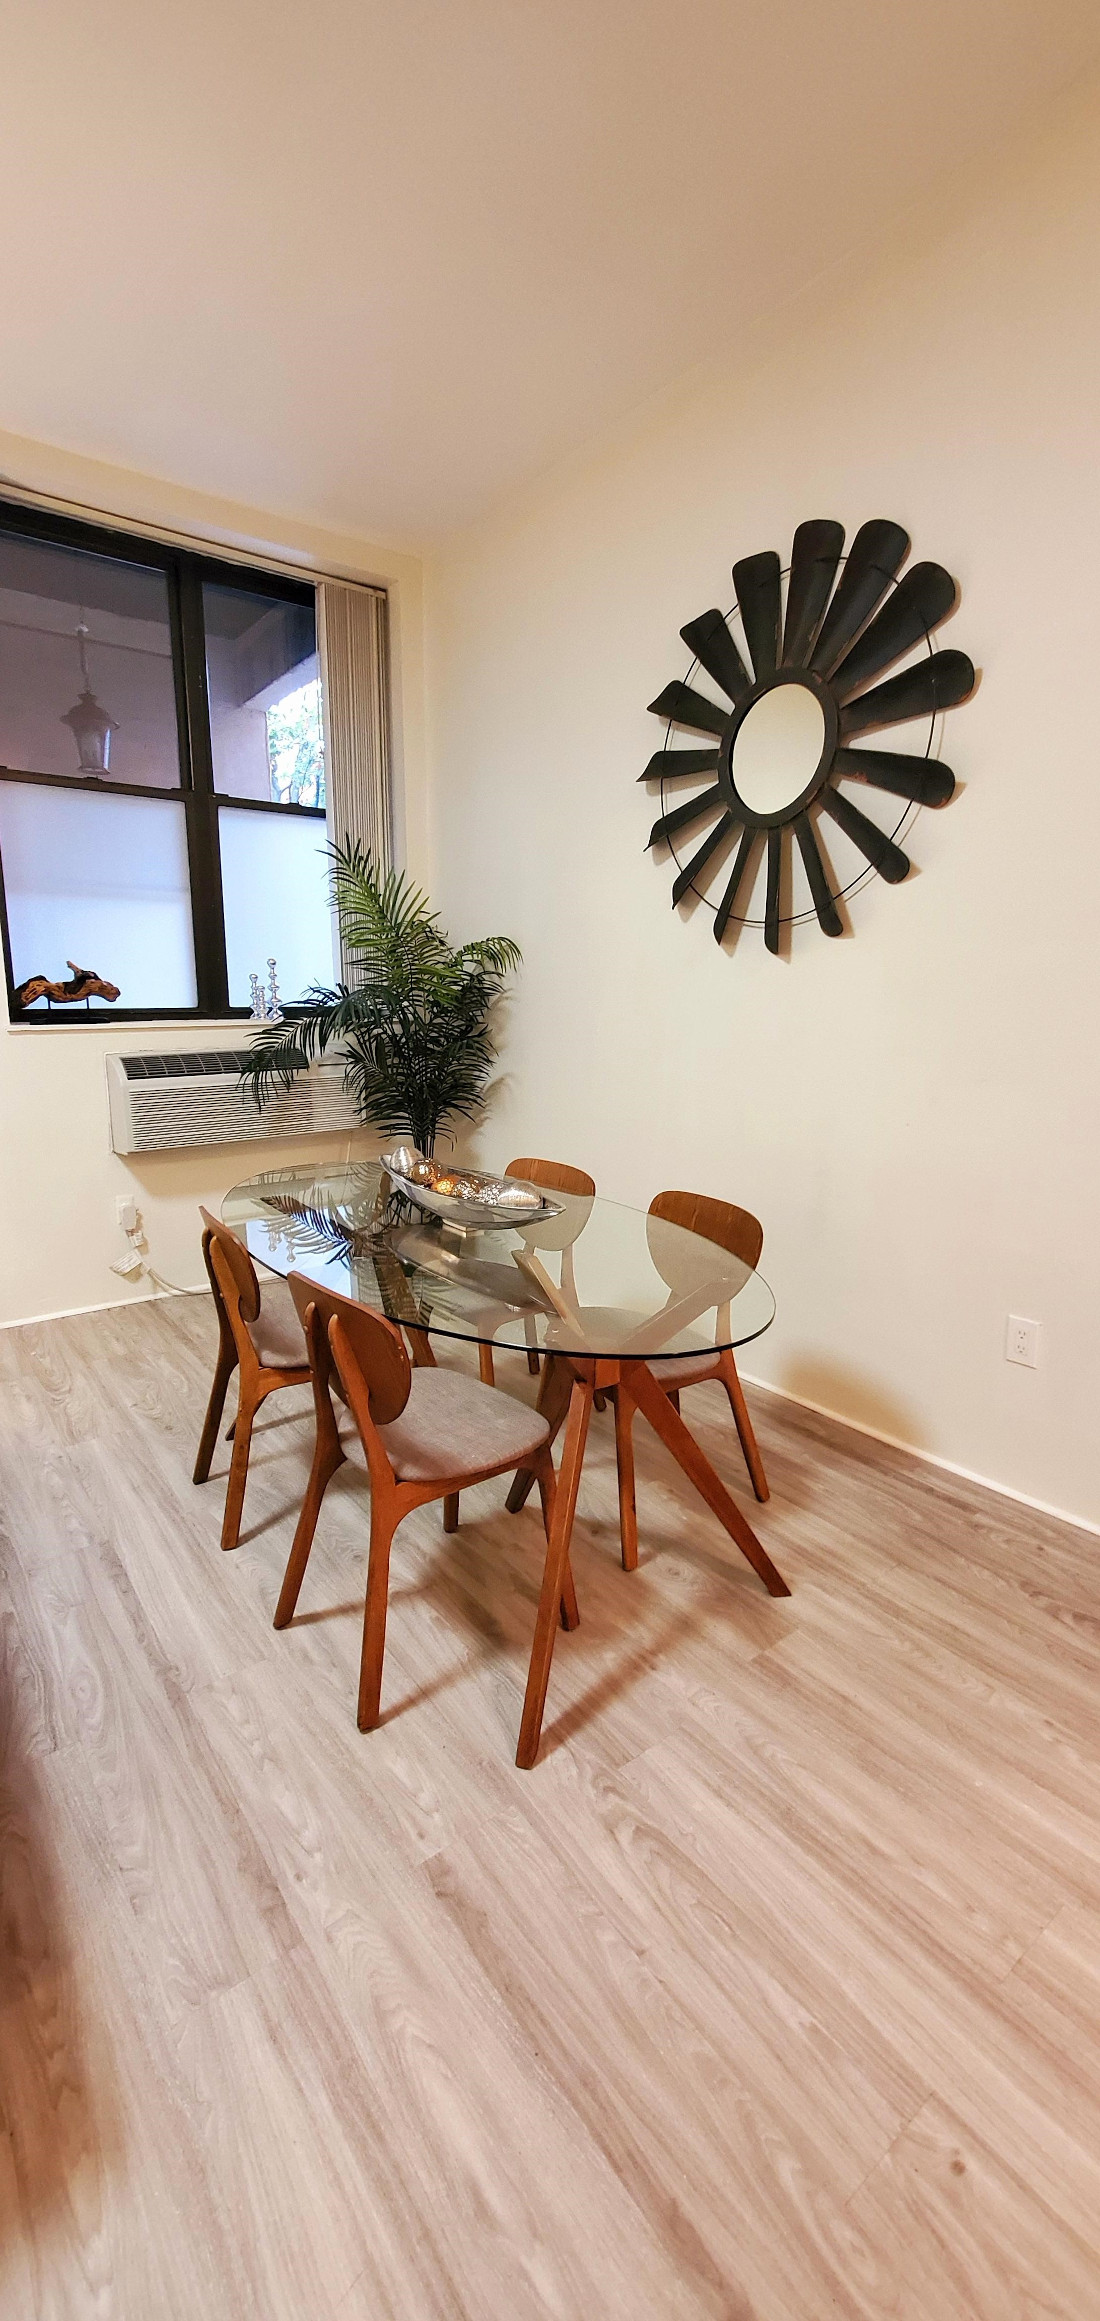 Dining Area at The Warehouse Apartments in Somerville, New Jersey